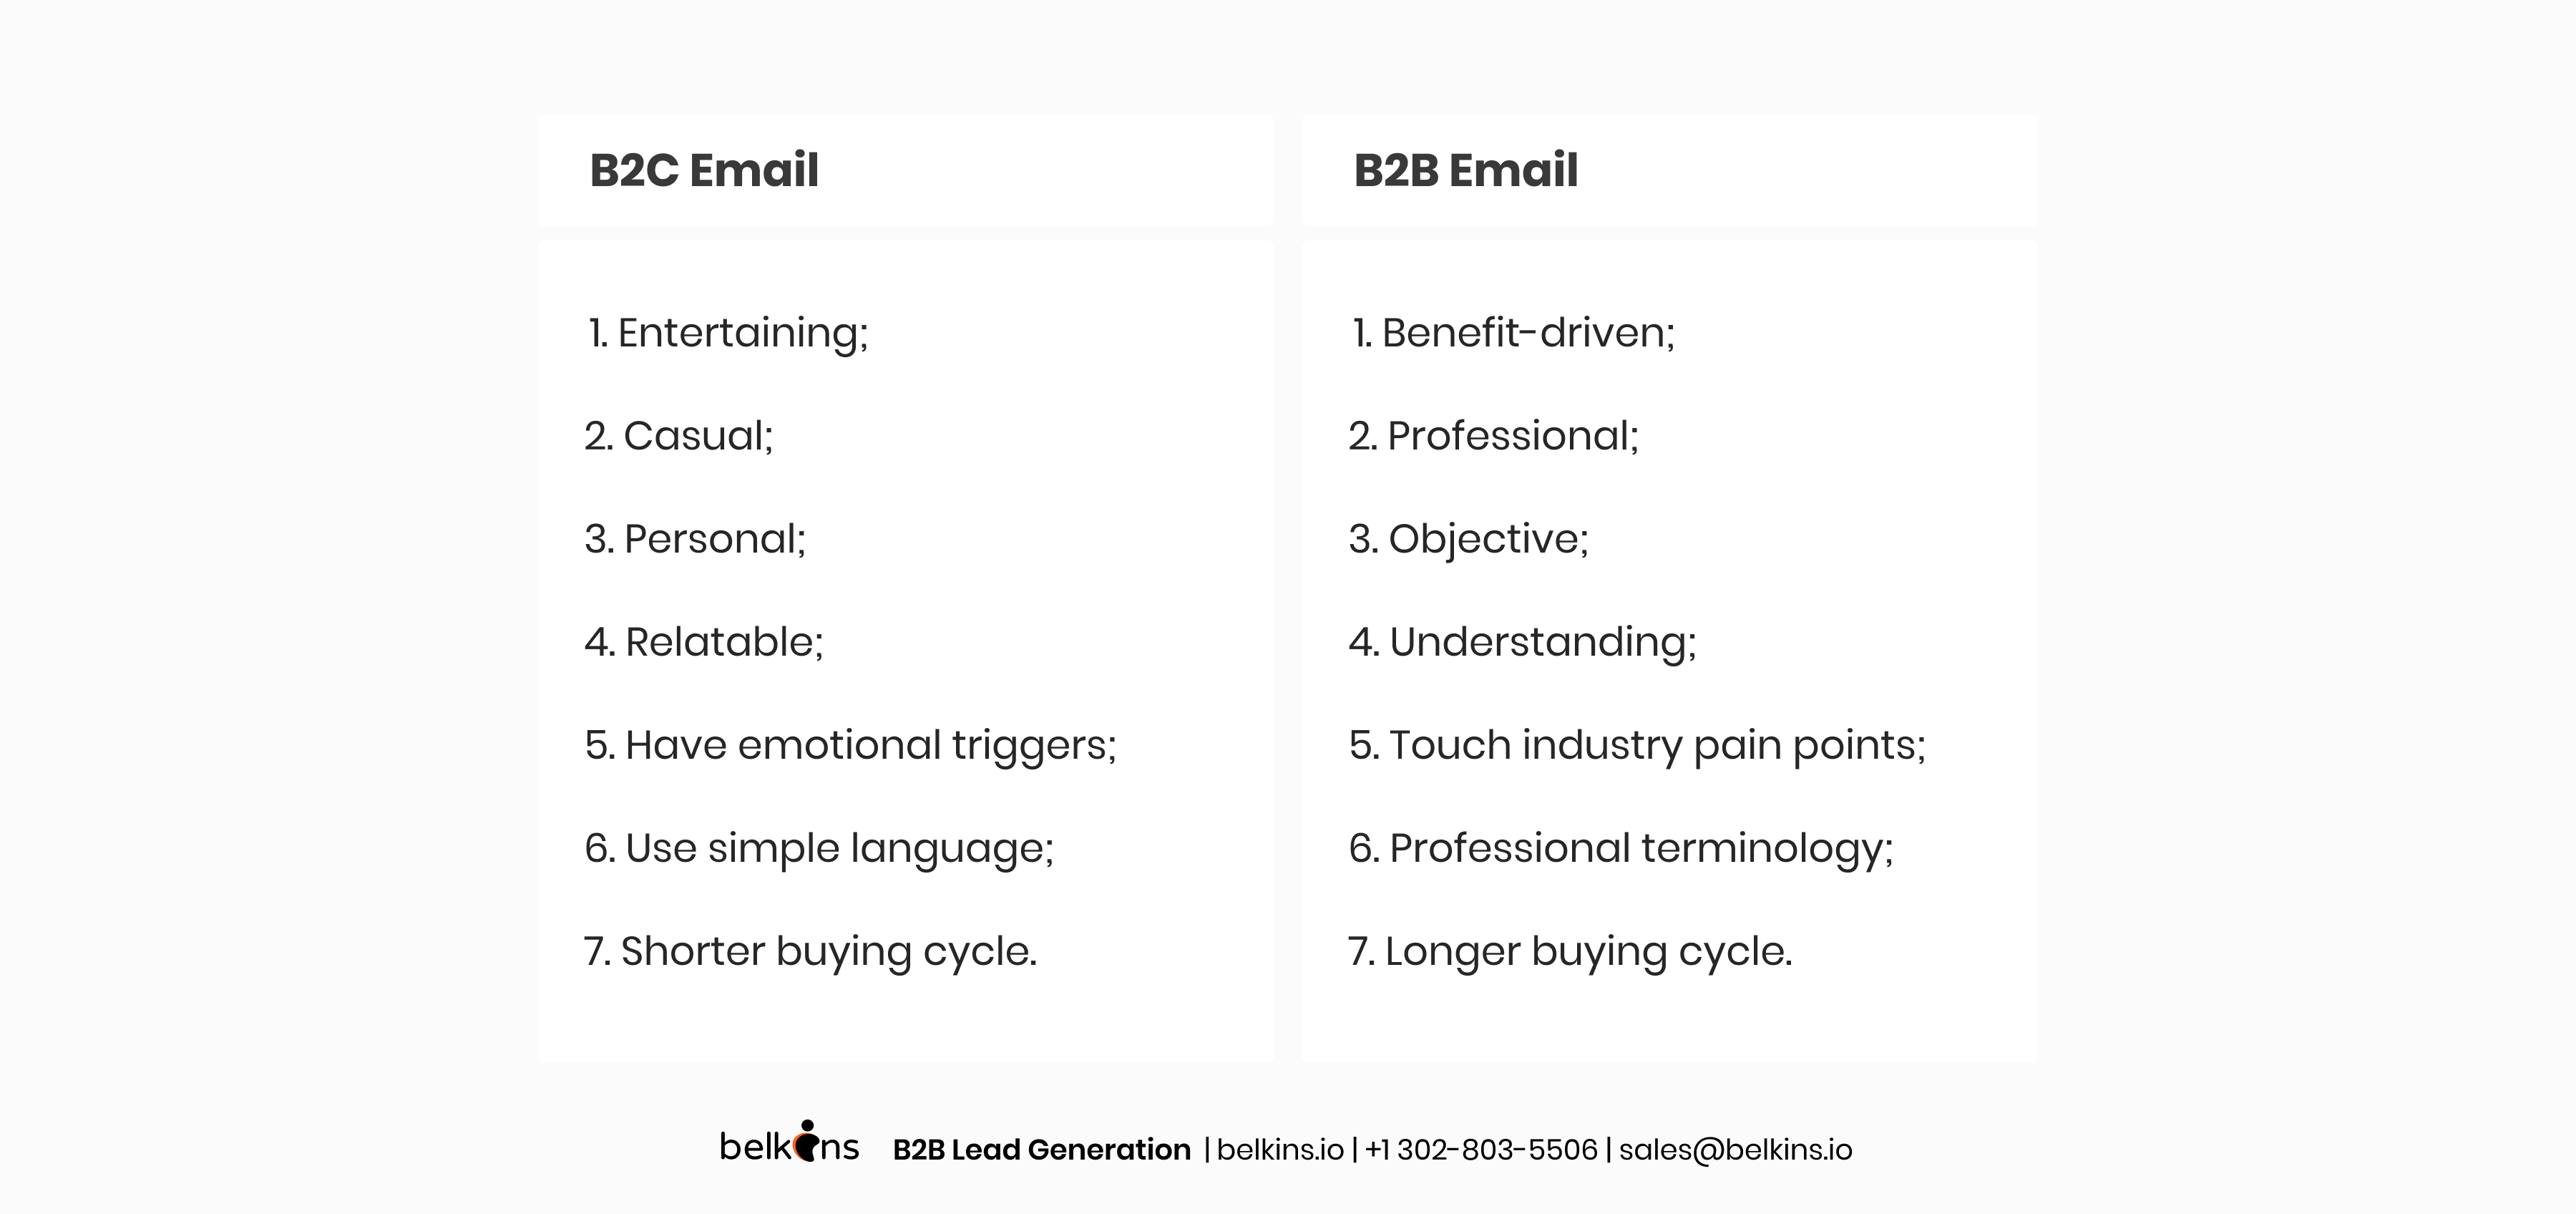 The-difference-between-B2C-emails-and-B2B-emails